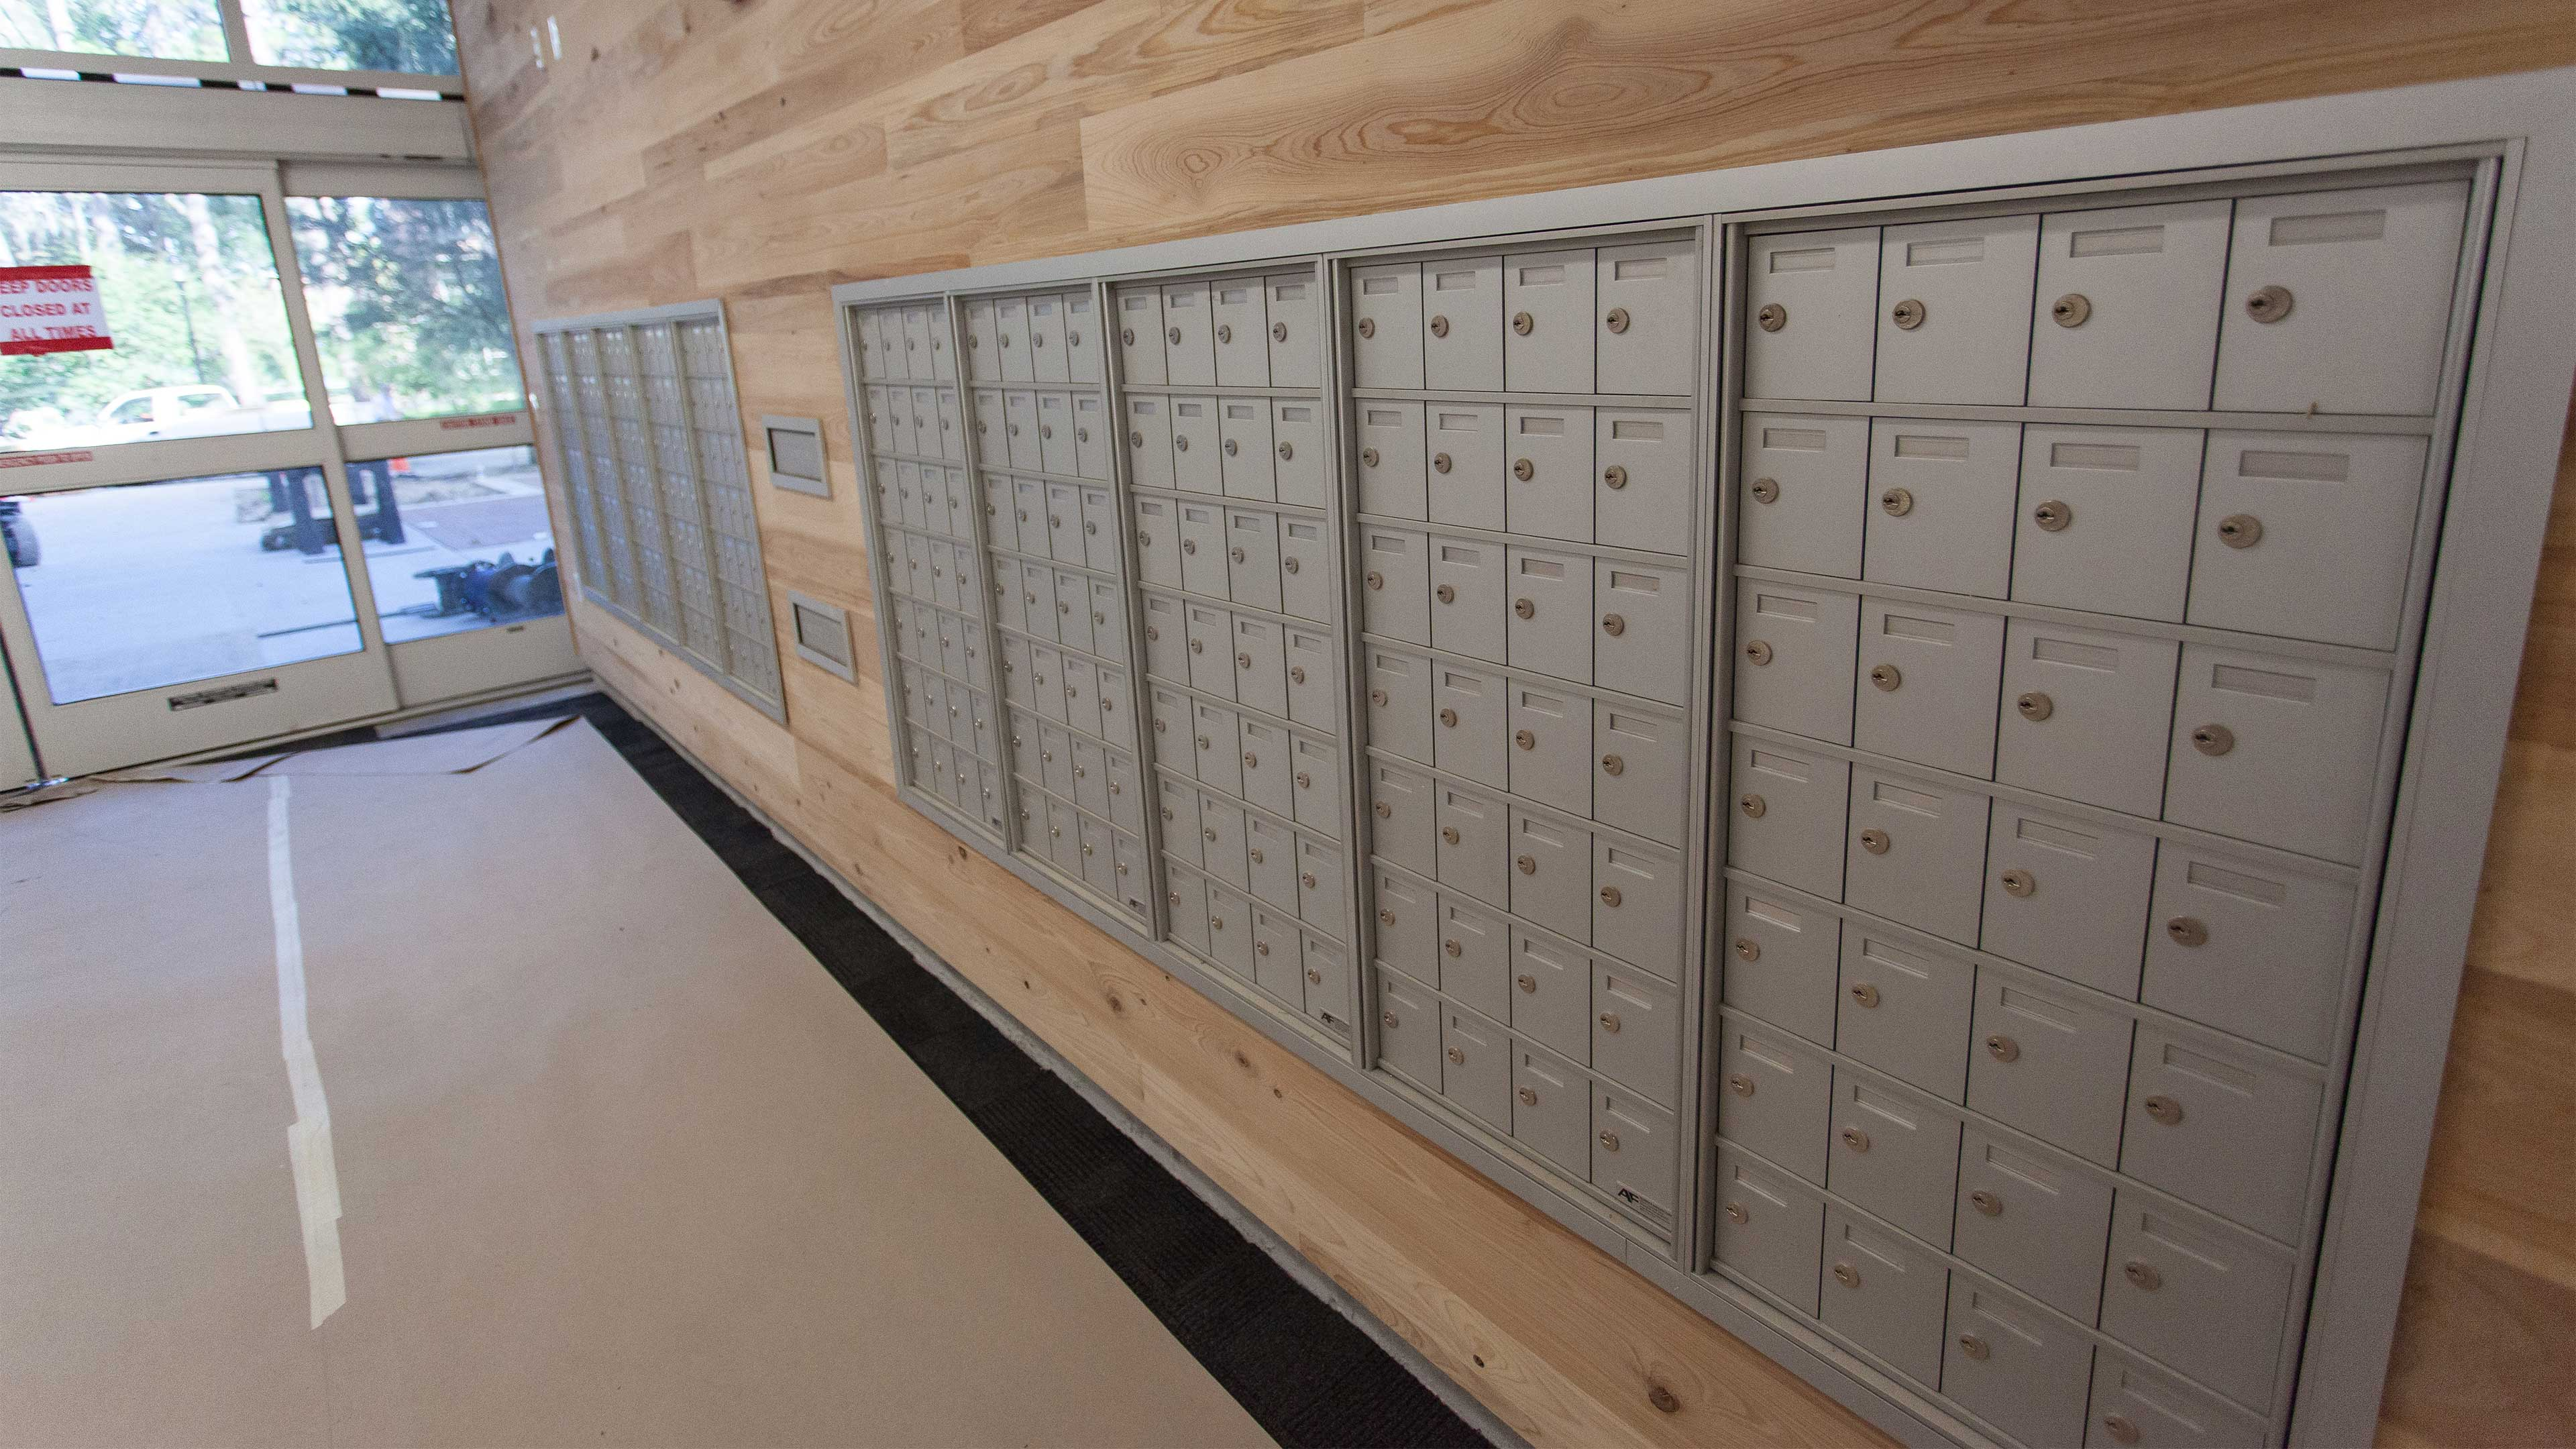 Residence hall mailboxes